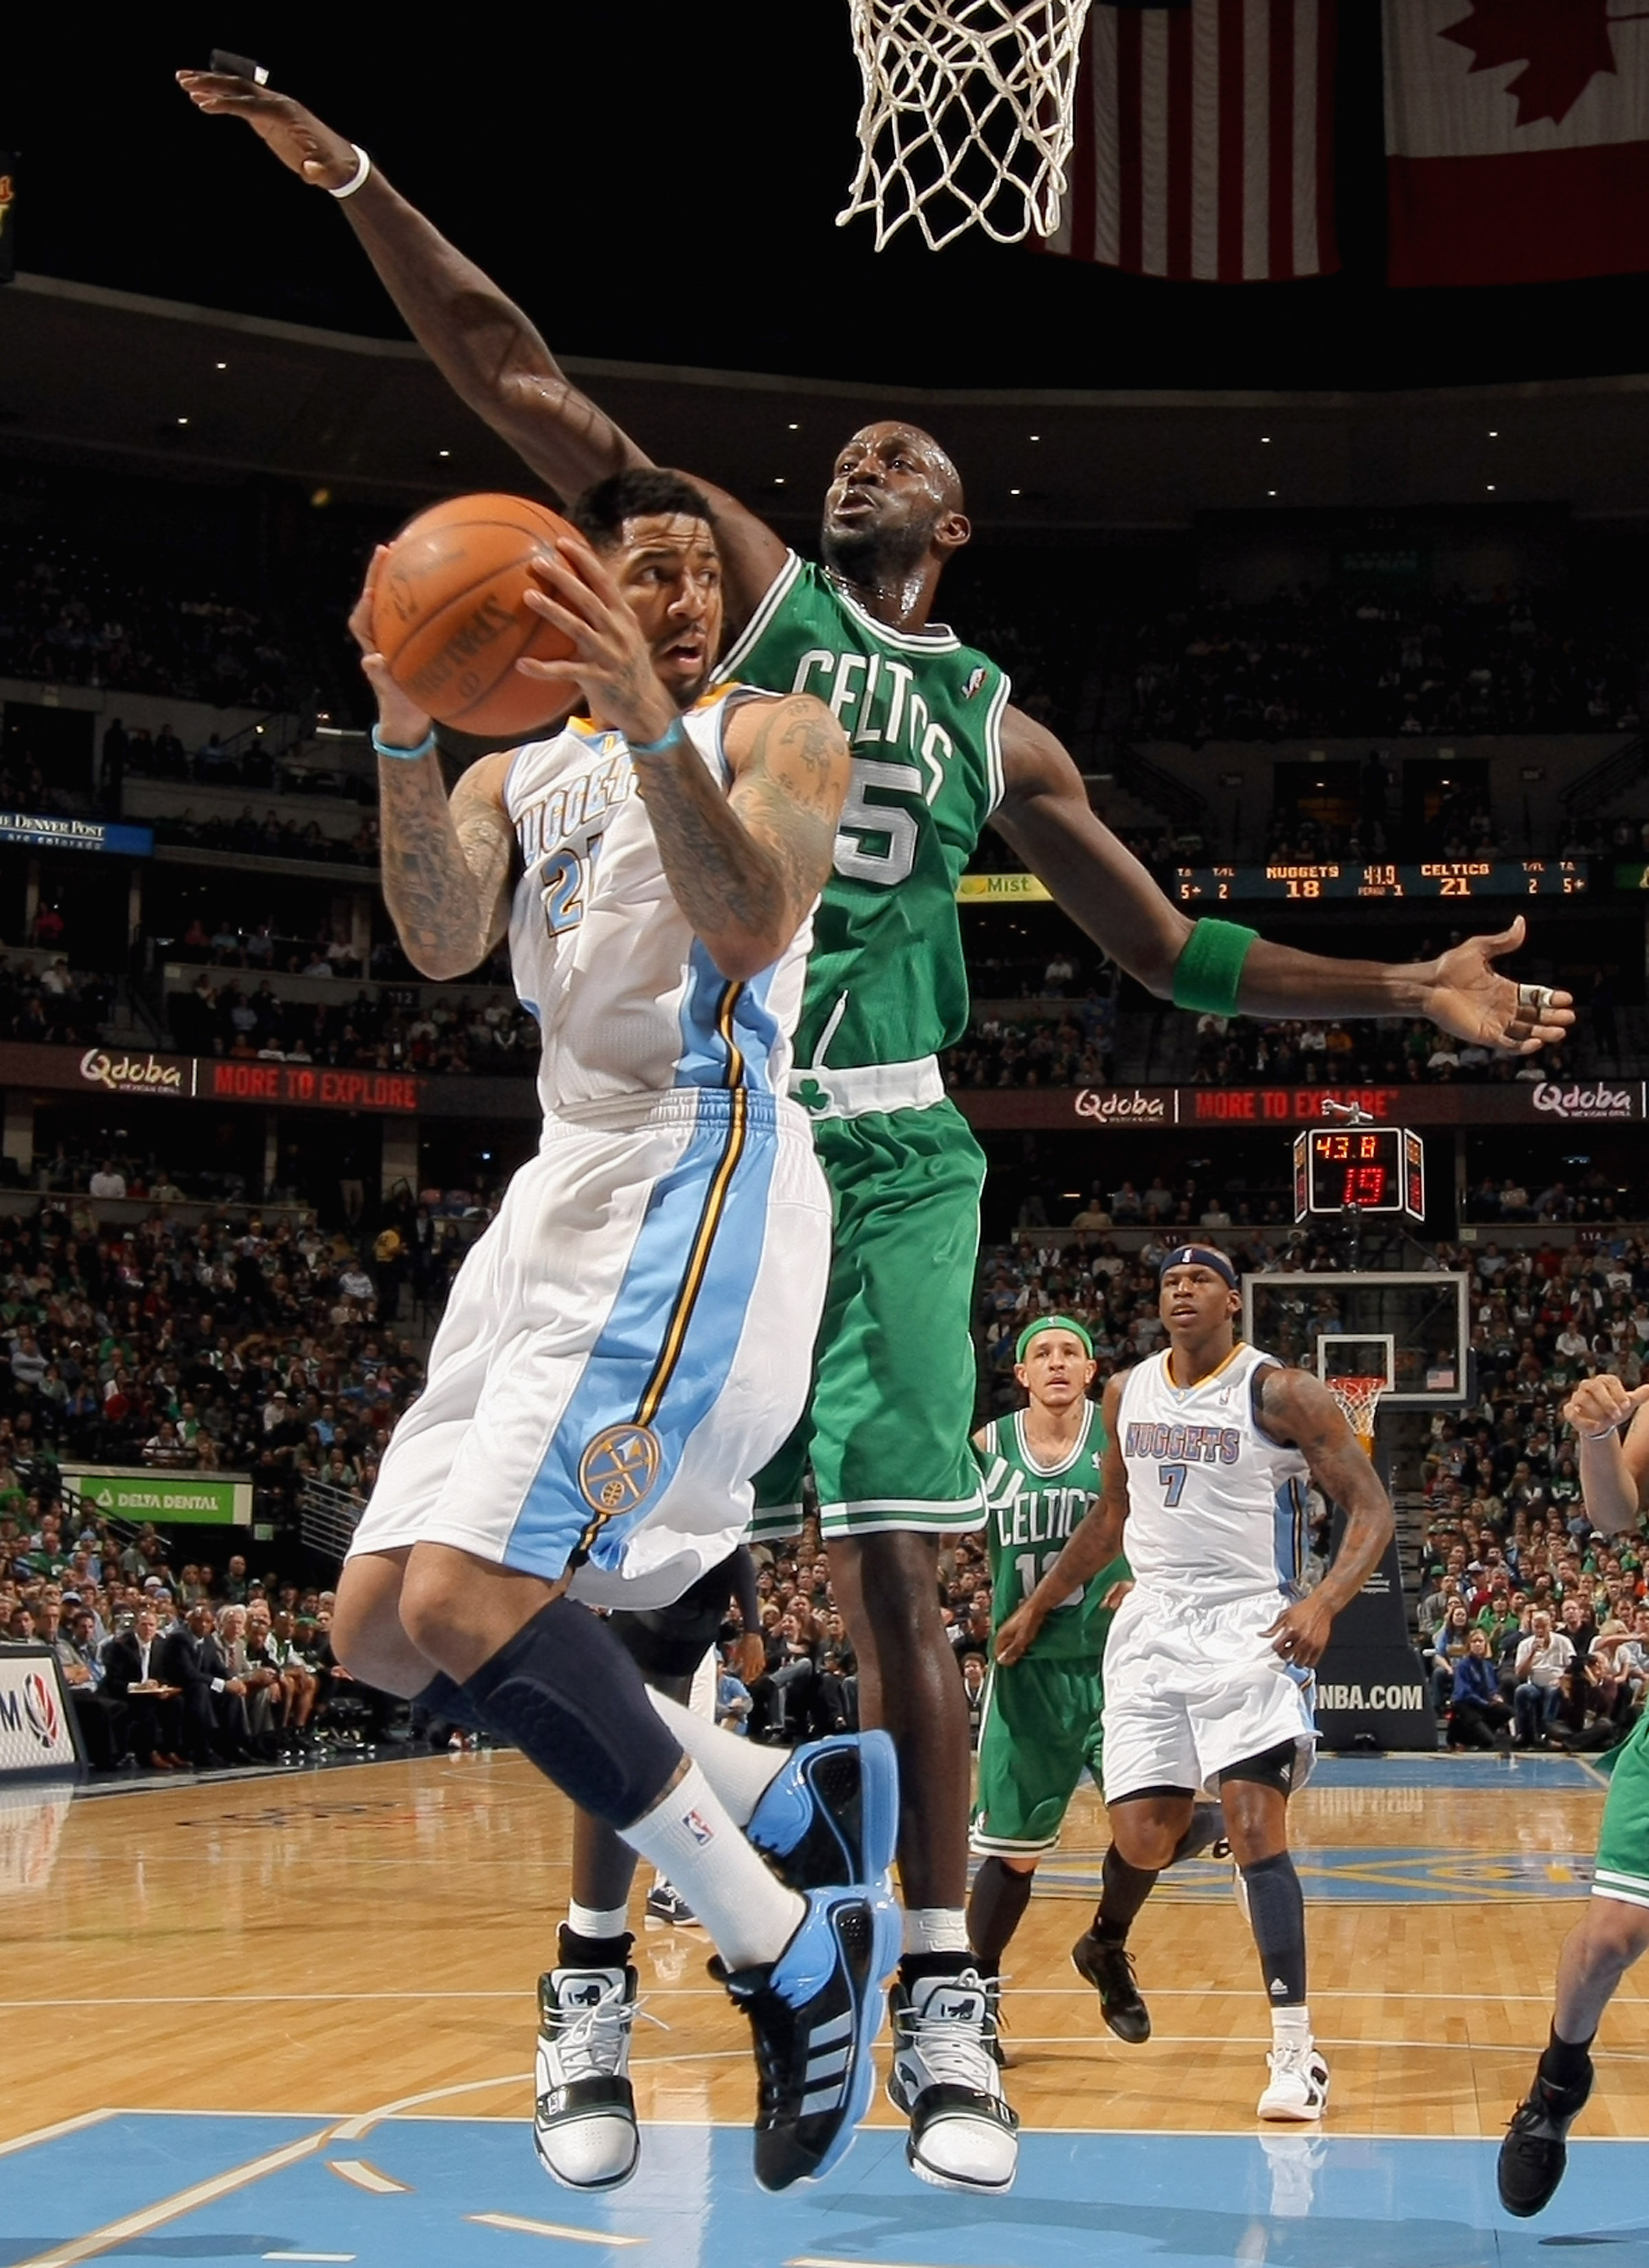 DENVER, CO - FEBRUARY 24:  Wilson Chandler #21 of the Denver Nuggets tries to get off a shot against the defense of  Kevin Garnett #5 of the Boston Celtics during NBA action at the Pepsi Center on February 24, 2011 in Denver, Colorado. NOTE TO USER: User